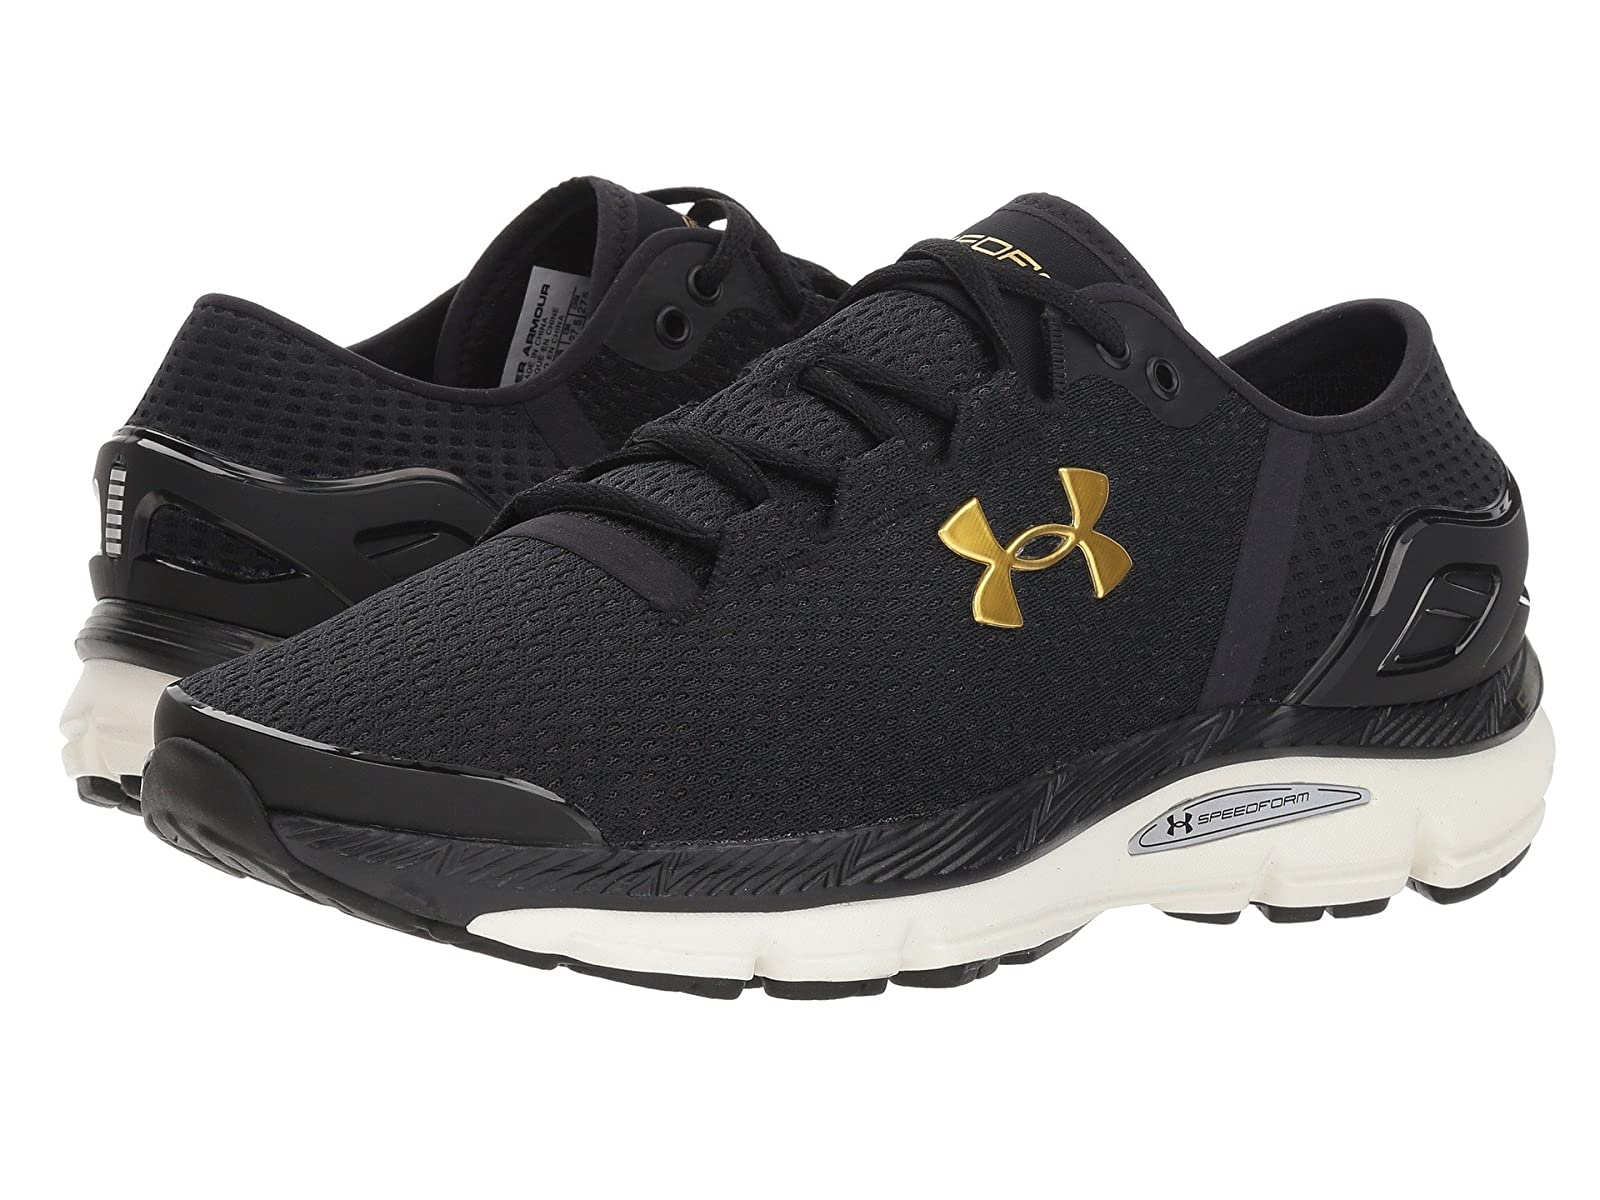 Under Armour UA Speedform Intake 2Atmospheric grades have affordable shoes